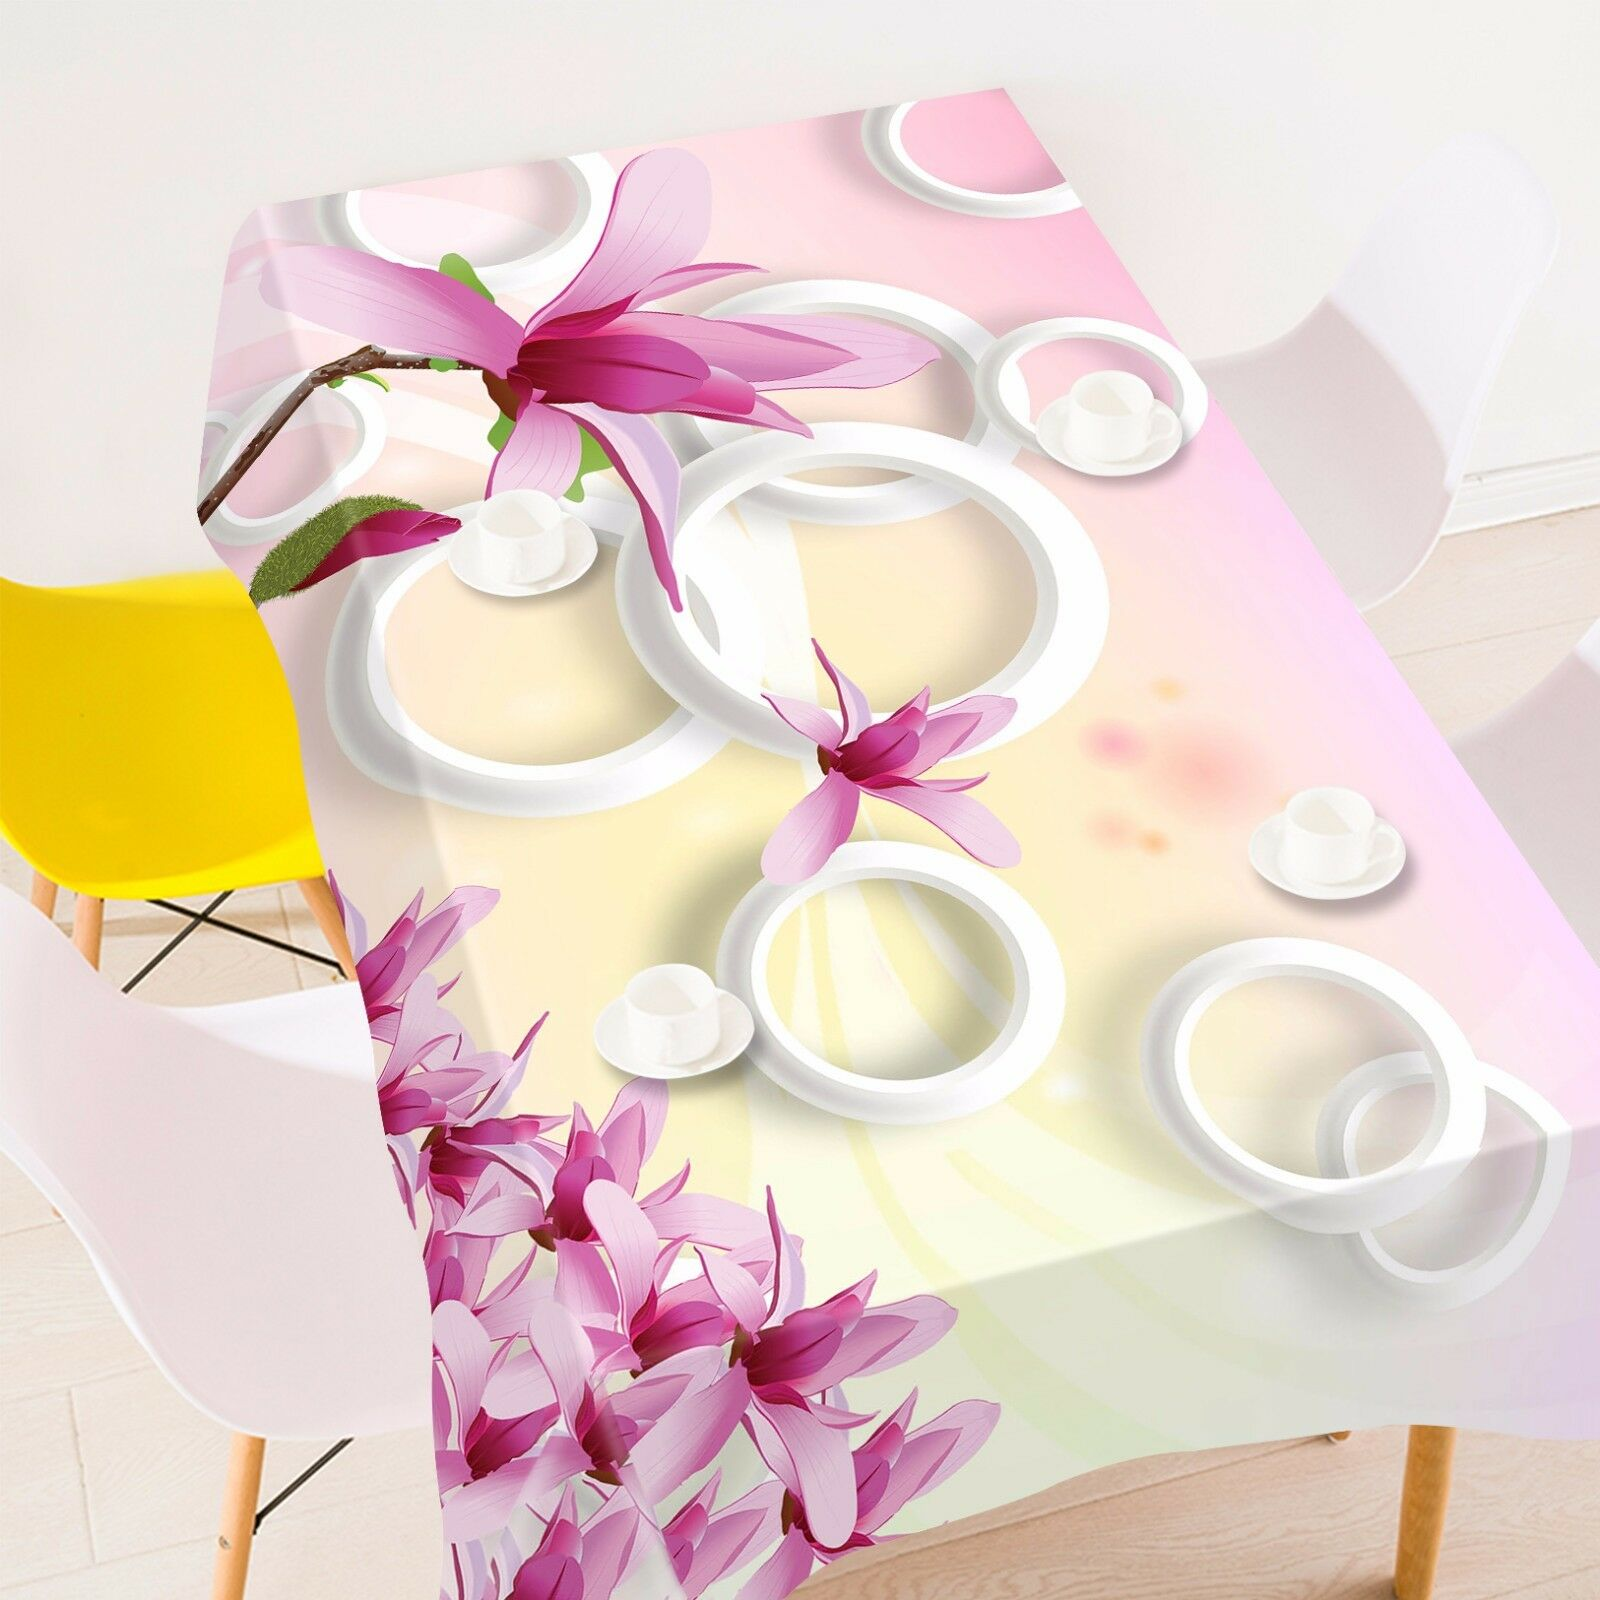 3D Flower 400 Tablecloth Table Cover Cloth Birthday Party Event AJ WALLPAPER AU